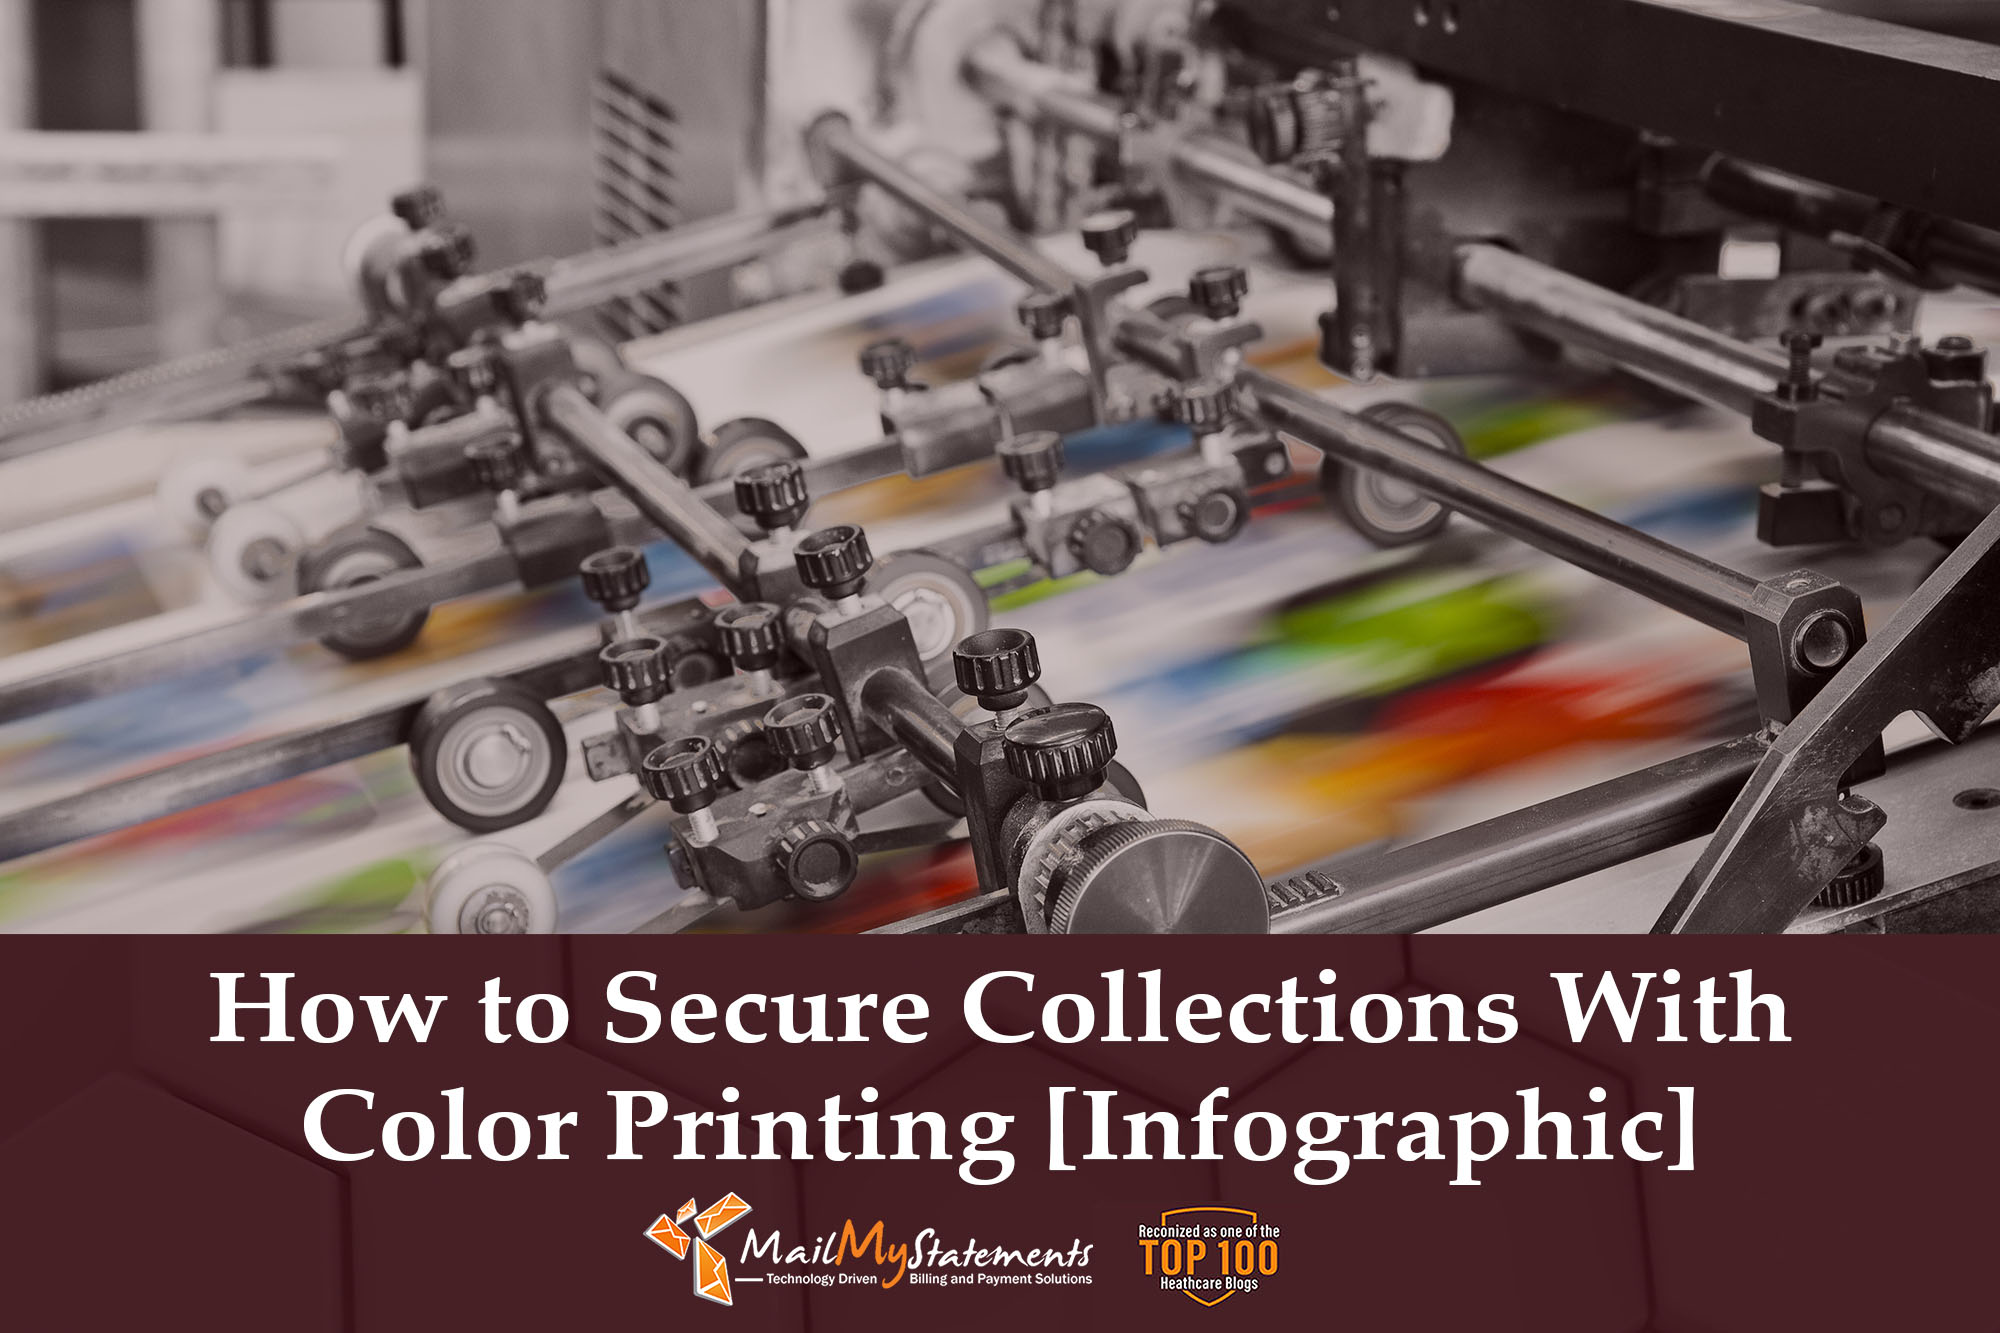 How to Secure Collections With Color Printing [Infographic]